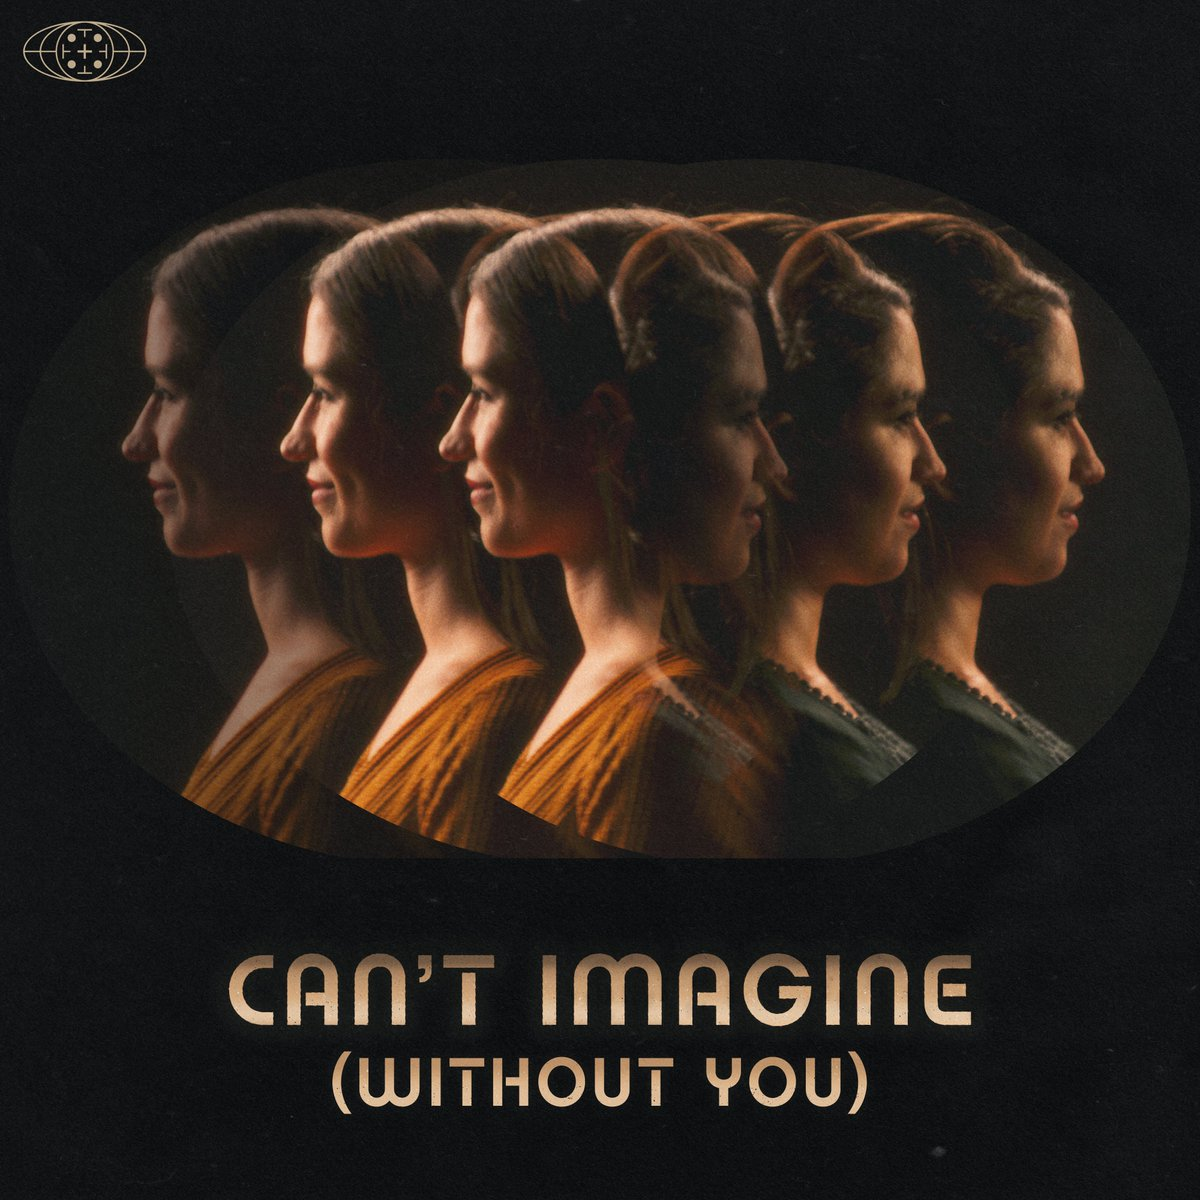 "PREMIERE: @MacedoMusic  Release New Music Video For #CantImagine(WithoutYou)""  via @ventsmagazine"